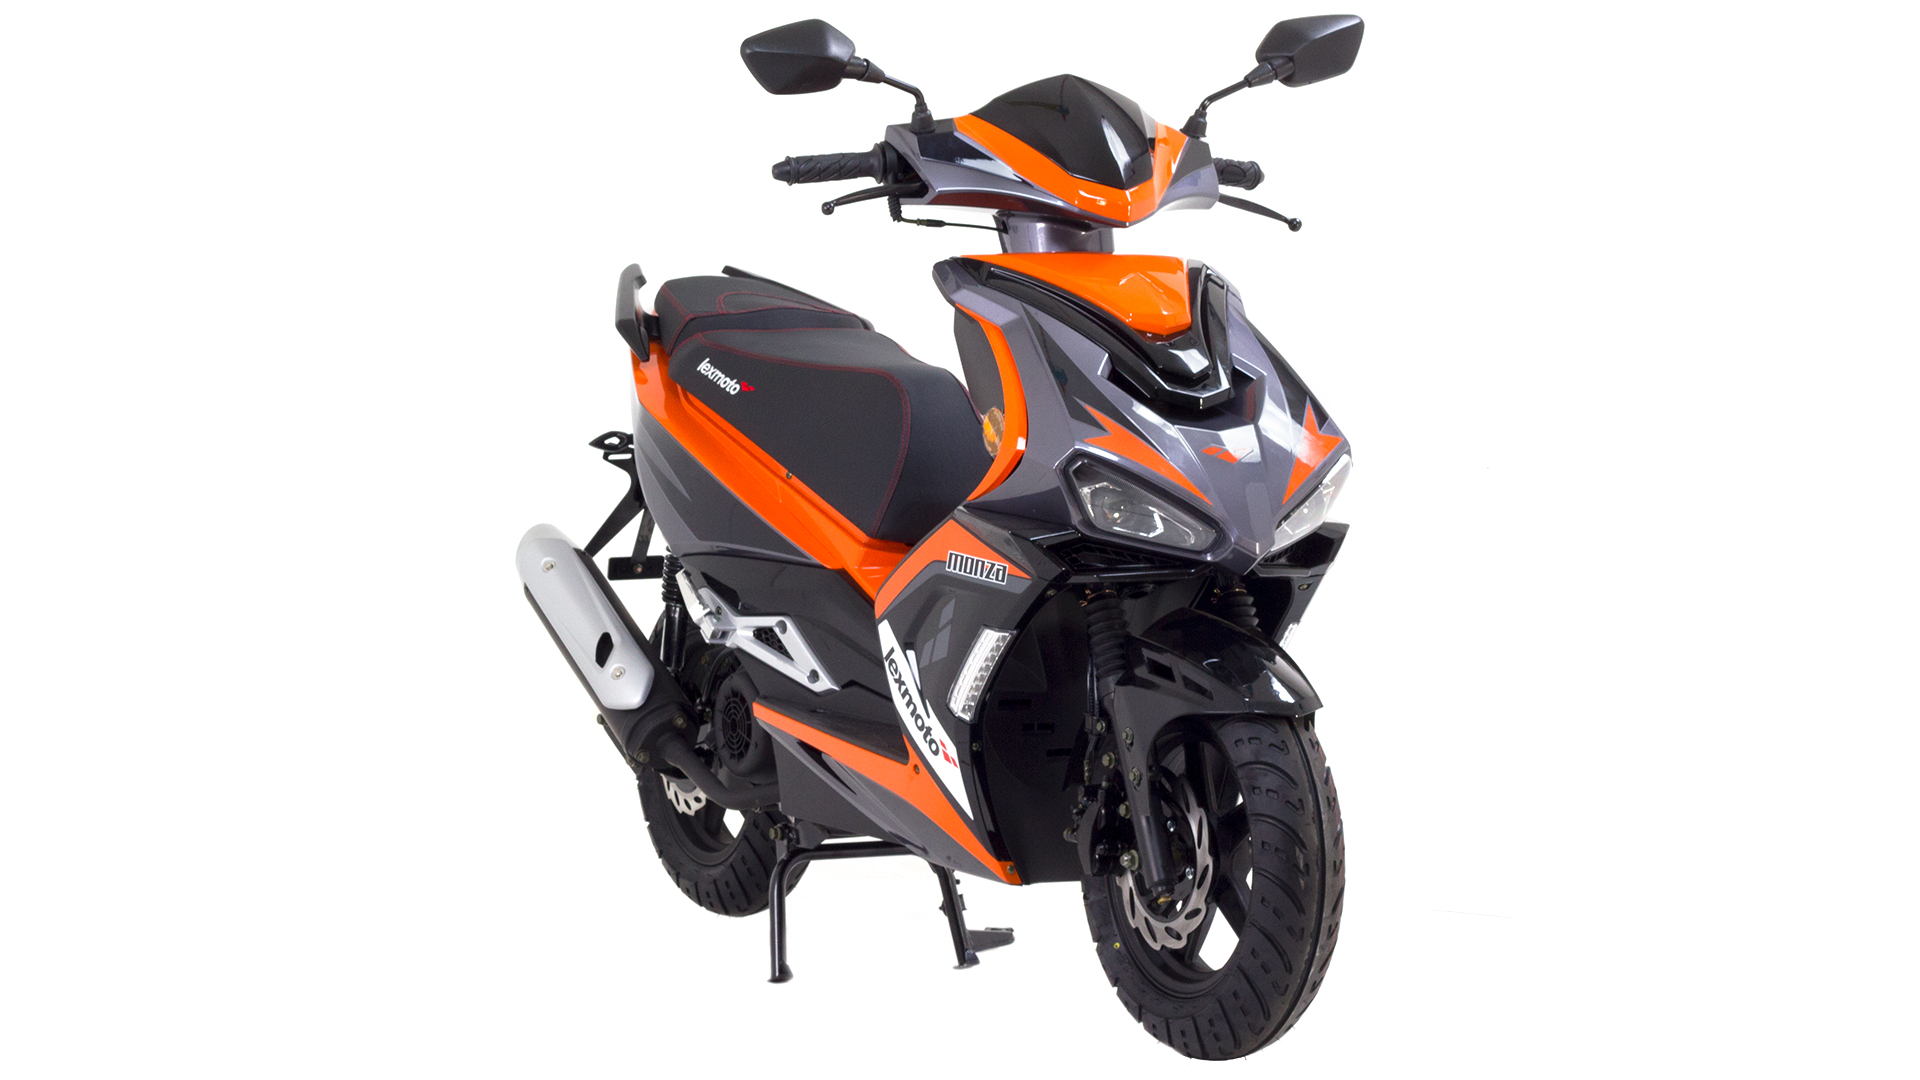 Kymco Agility 125 >> Lexmoto | Monza 125 | ZN125T-34 | Lexmoto Scooters | 125cc Scooter | Learner Legal Scooters ...